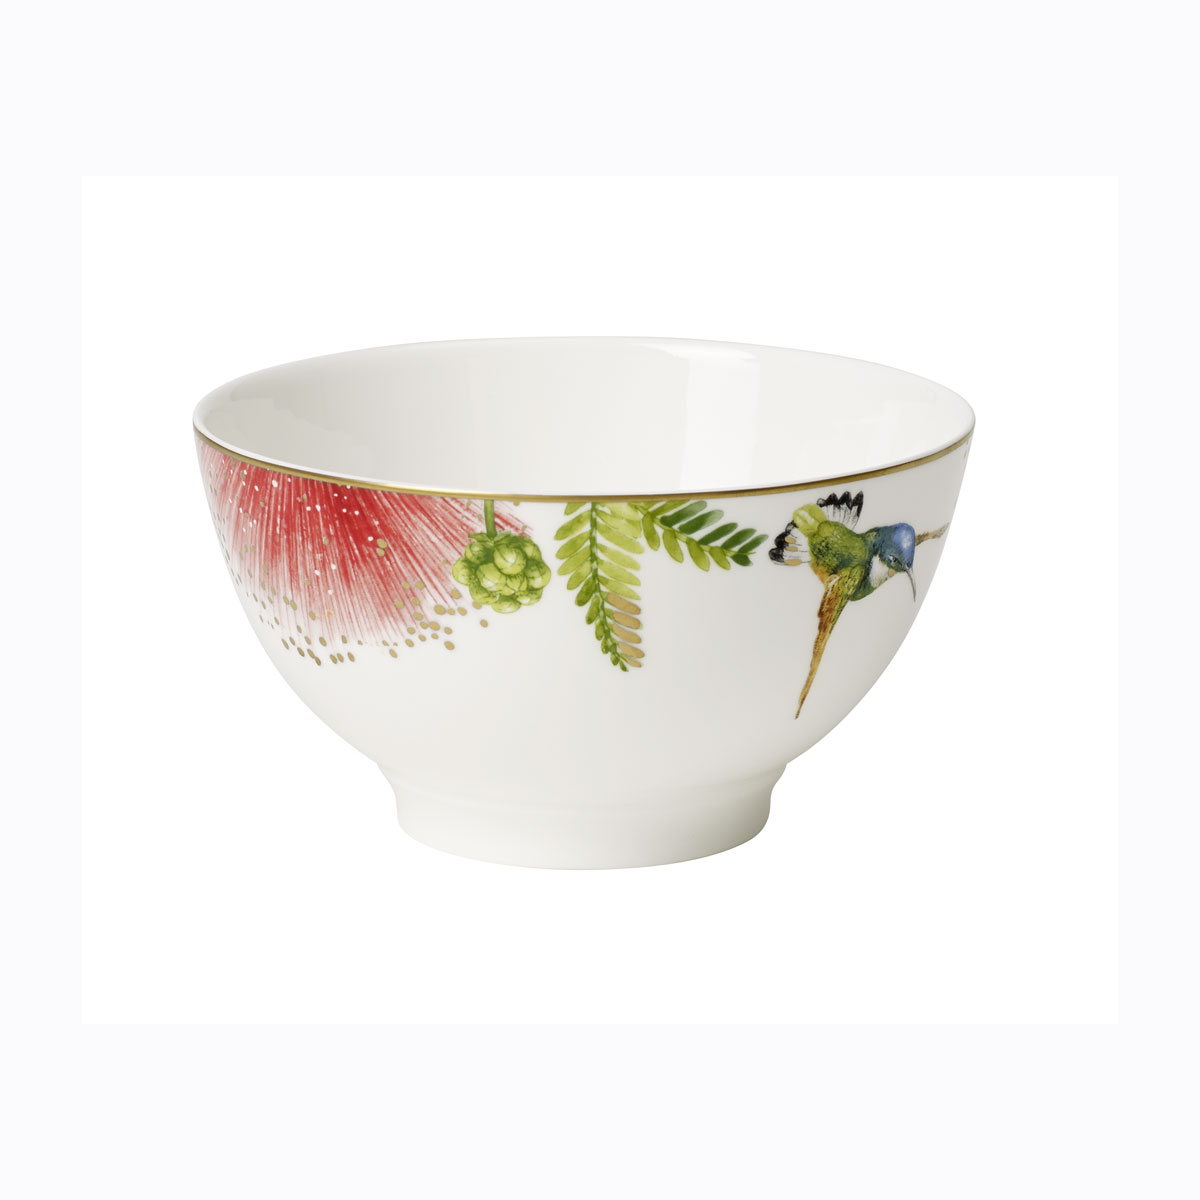 Villeroy and Boch Amazonia Anmut Rice Bowl, Single